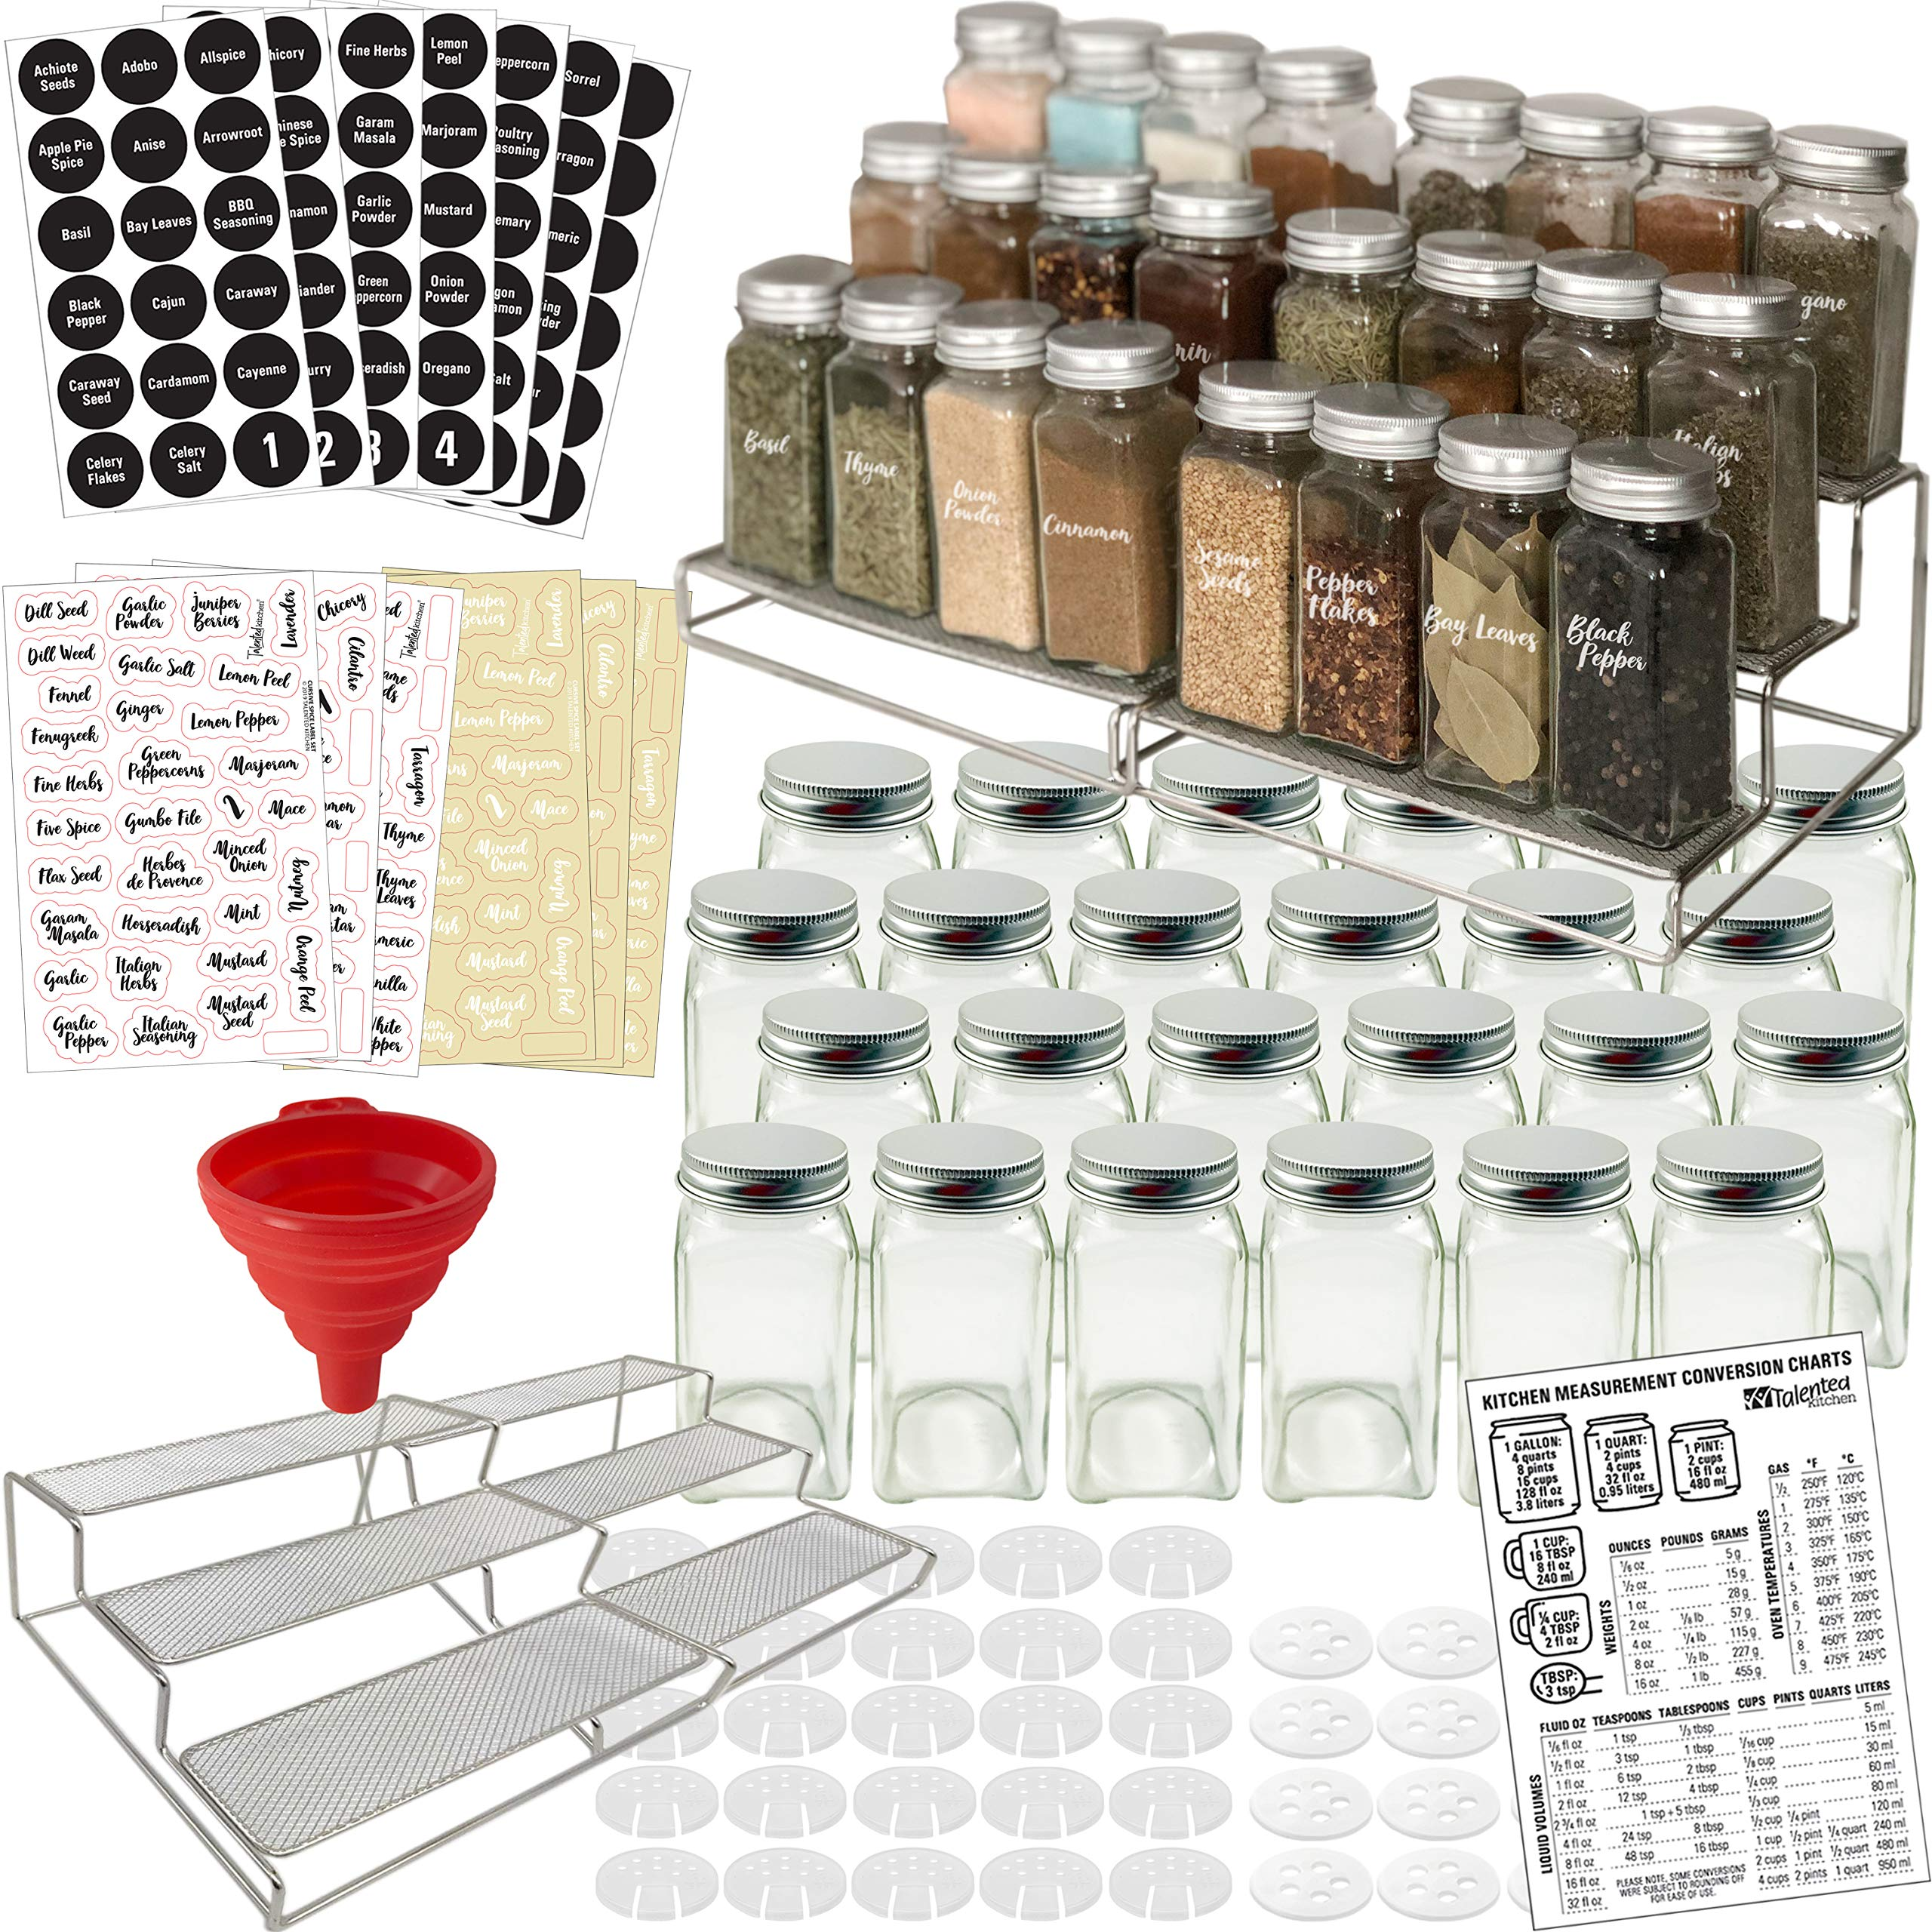 3-Tier Spice Racks and 24 Glass Spice Jar & 2 Types of Printed Spice Labels by Talented Kitchen. Complete Set: 2 Shelf Stainless Steel Racks, 24 Square Empty Glass Jars 4oz, Chalkboard & Clear Label by Talented Kitchen